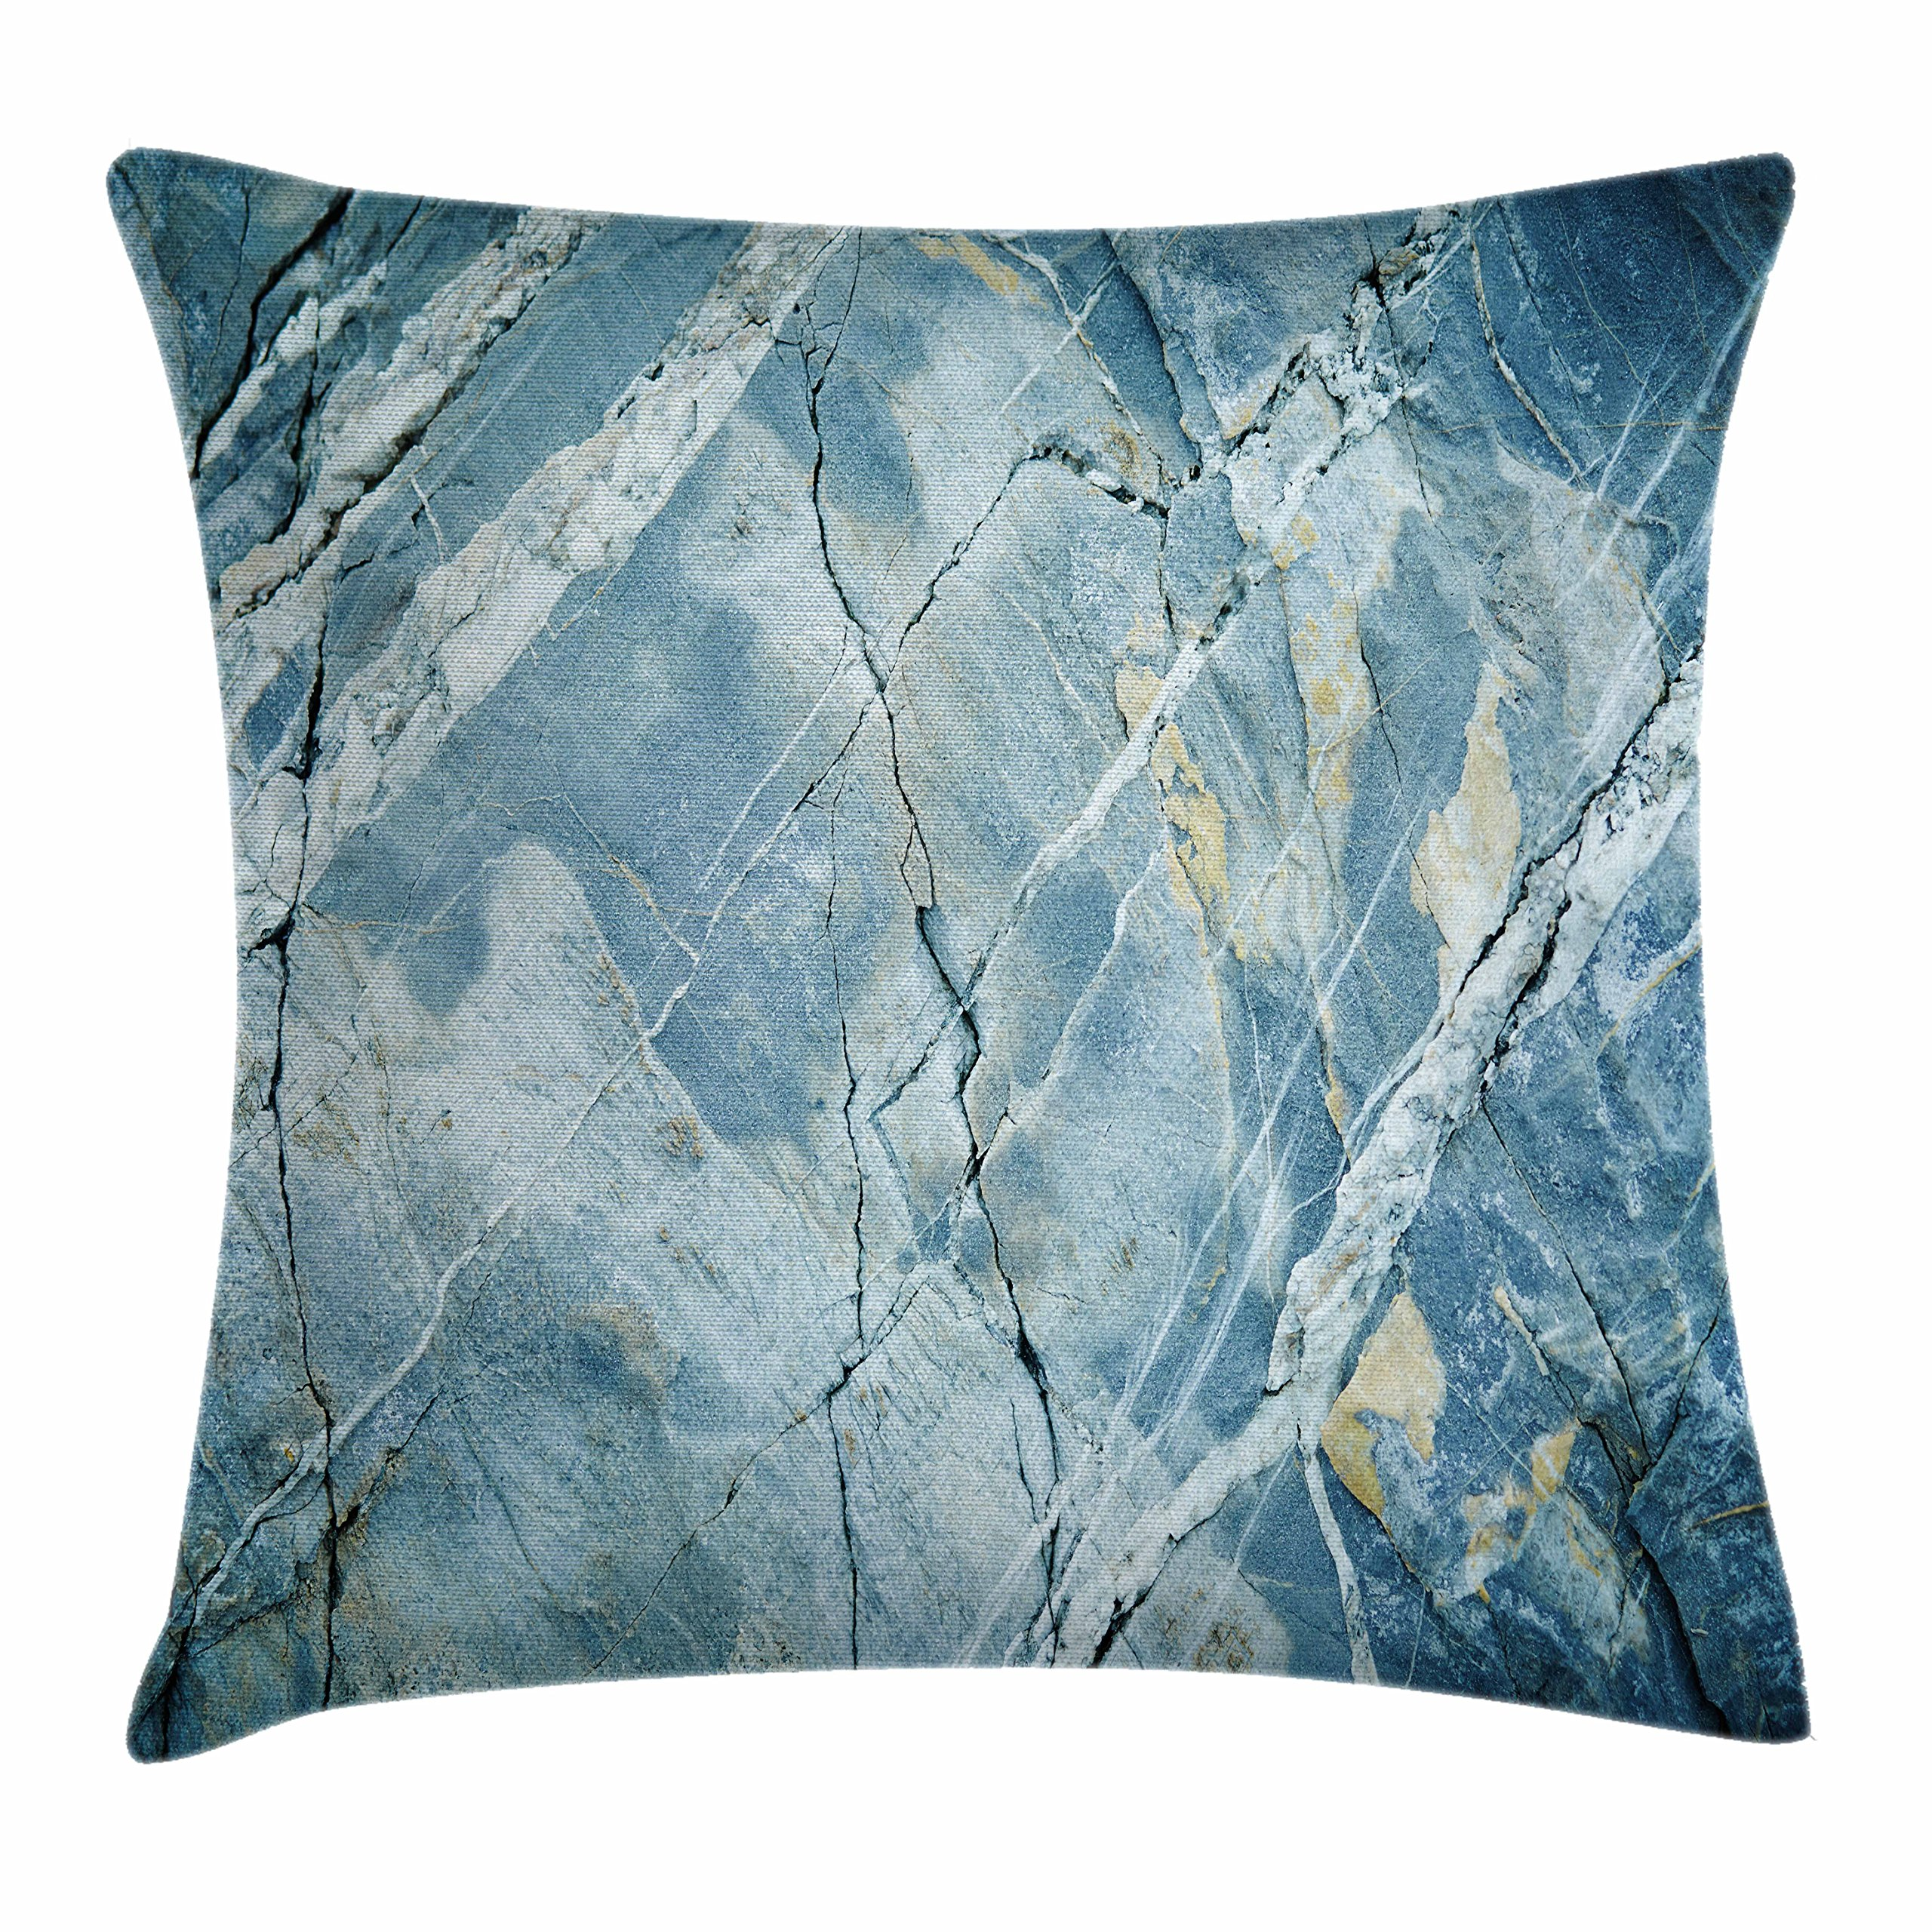 Ambesonne Marble Throw Pillow Cushion Cover, Exquisite Granite Stone Architecture Floor Artistic Nature Faded Rock Picture, Decorative Square Accent Pillow Case, 18 X 18 Inches, Light Blue Grey